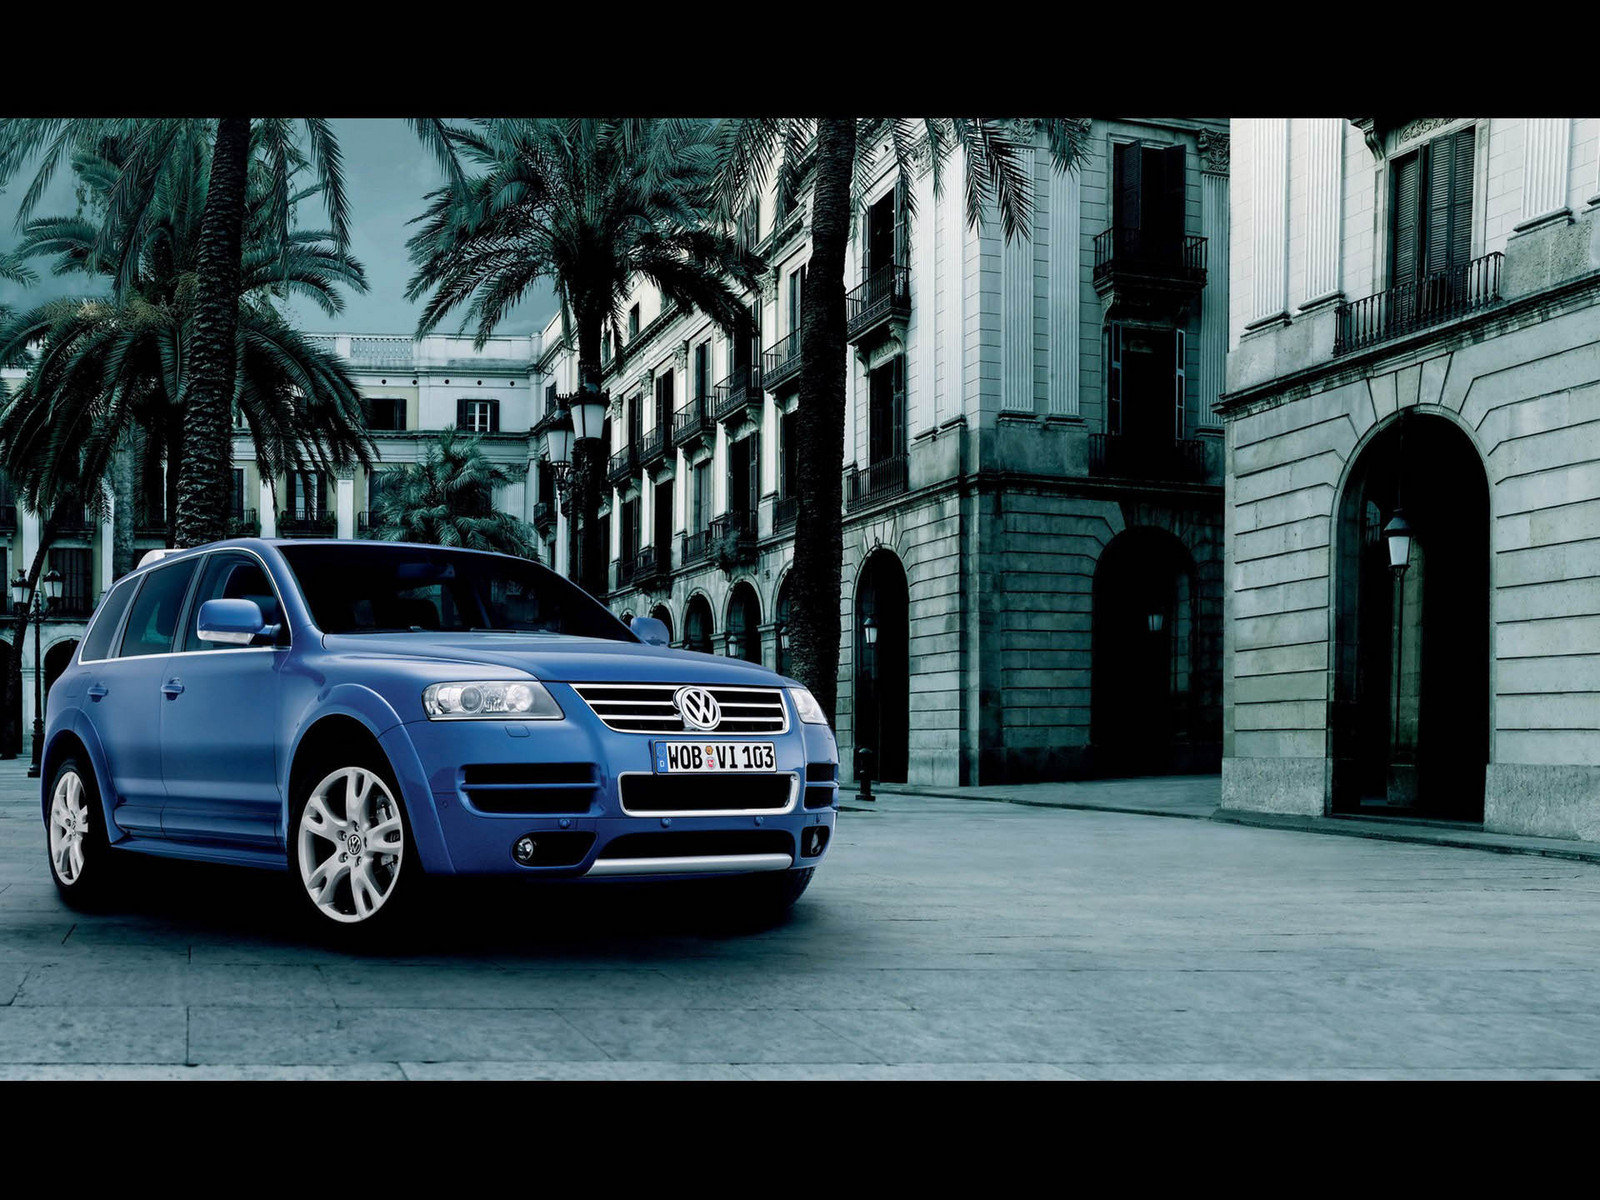 2005 volkswagen touareg w12 sport review top speed. Black Bedroom Furniture Sets. Home Design Ideas